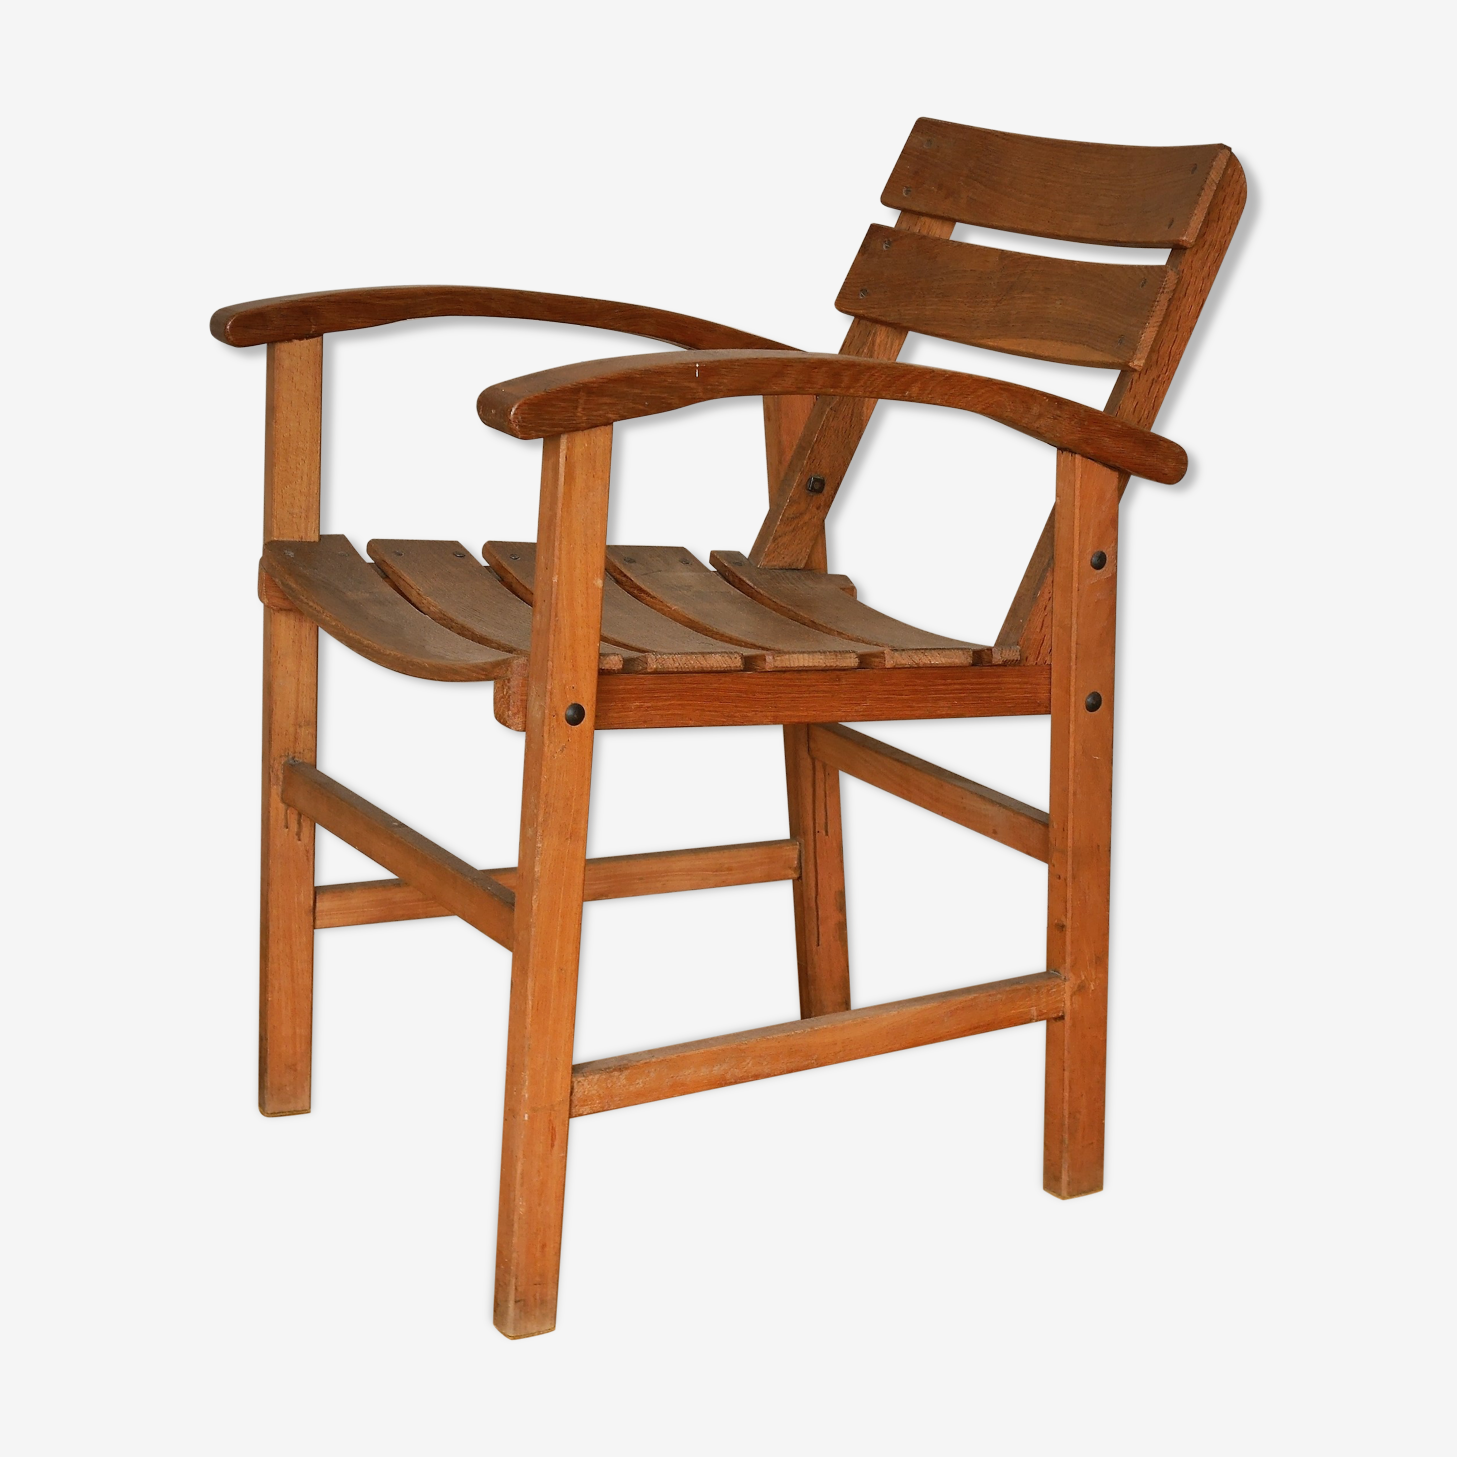 Solid oak armchair from the 40/50s